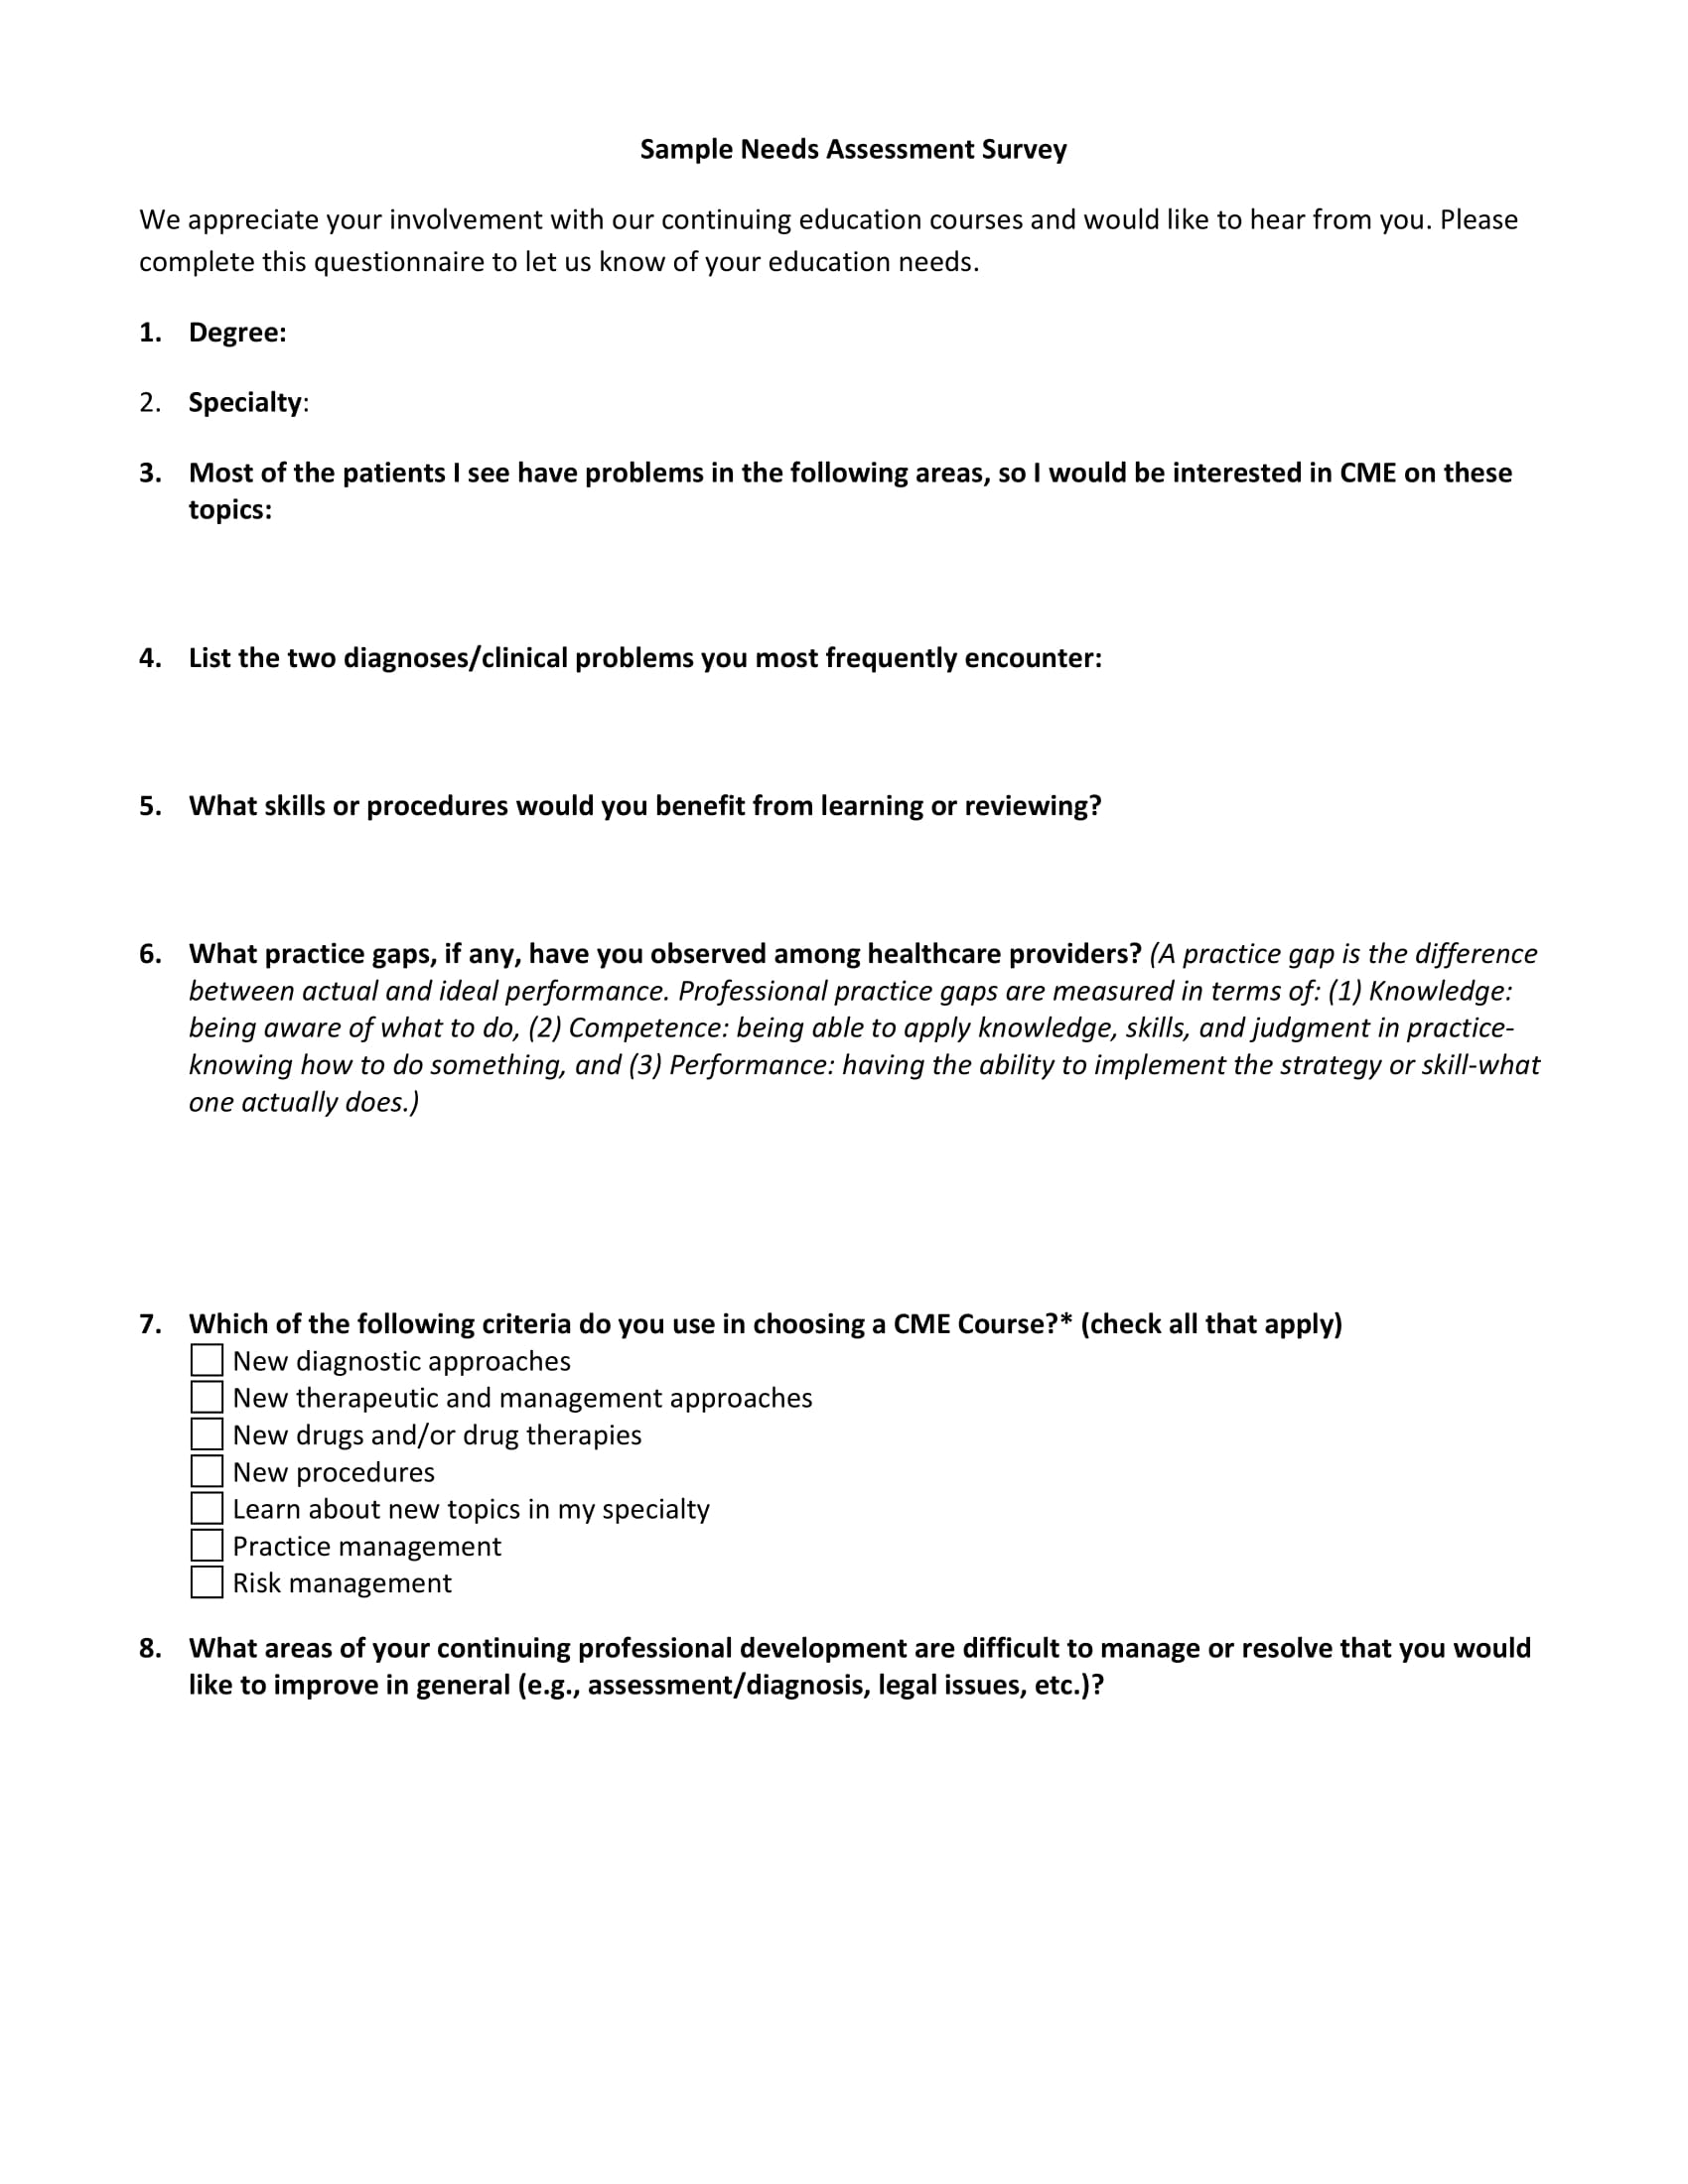 needs assessment survey example